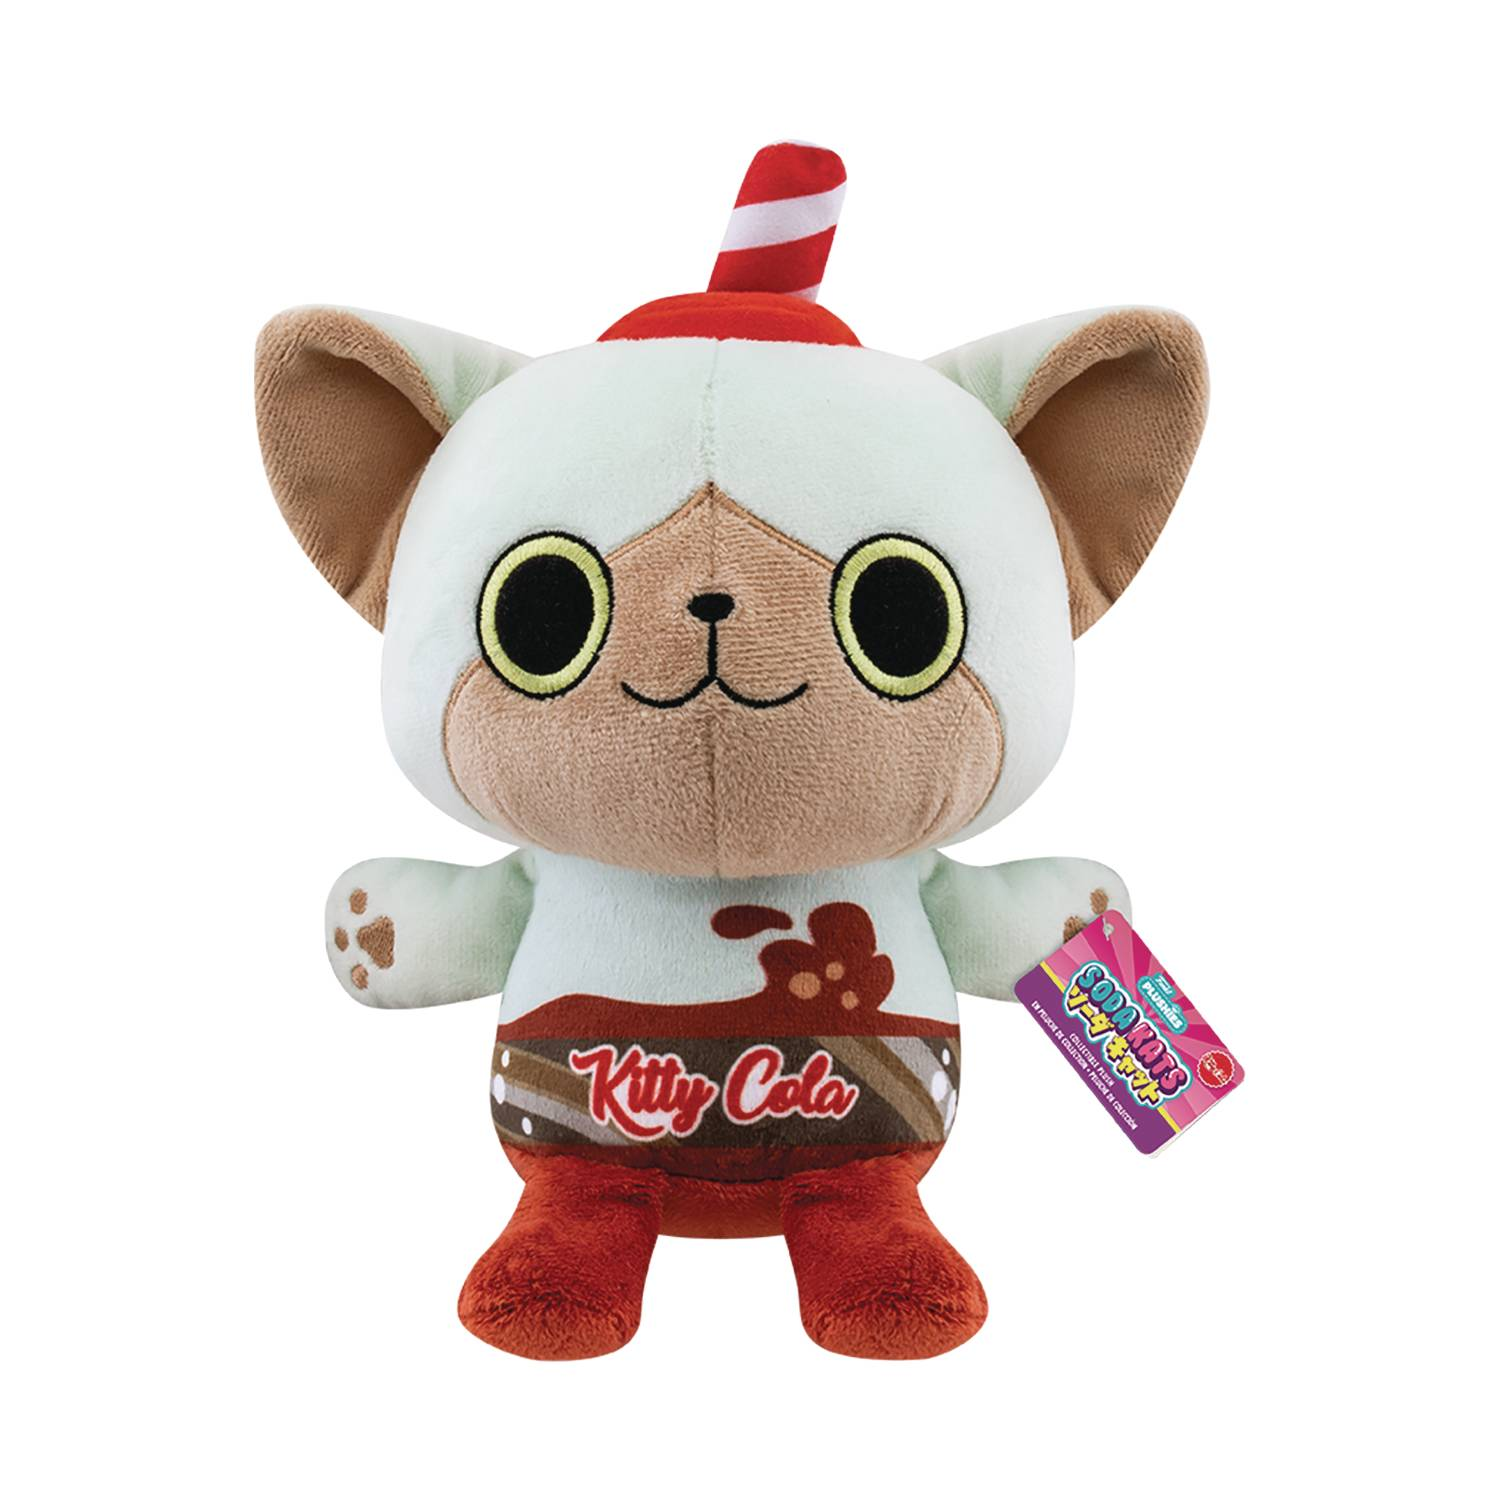 POP PAKA PAKA SODA KAT KITTY COLA 7IN PLUSH